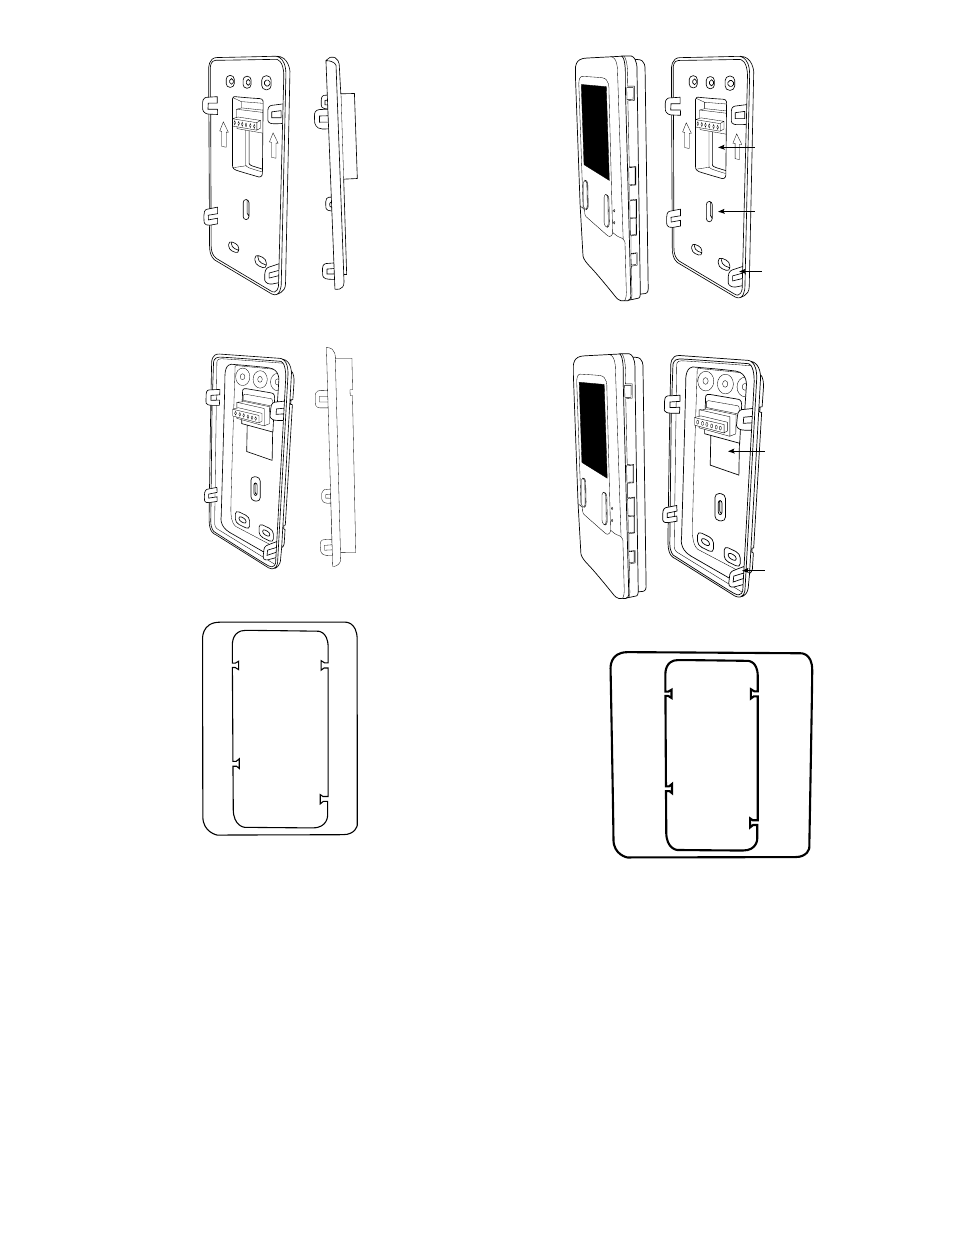 Carrier Cor Thermostat Wiring Diagram